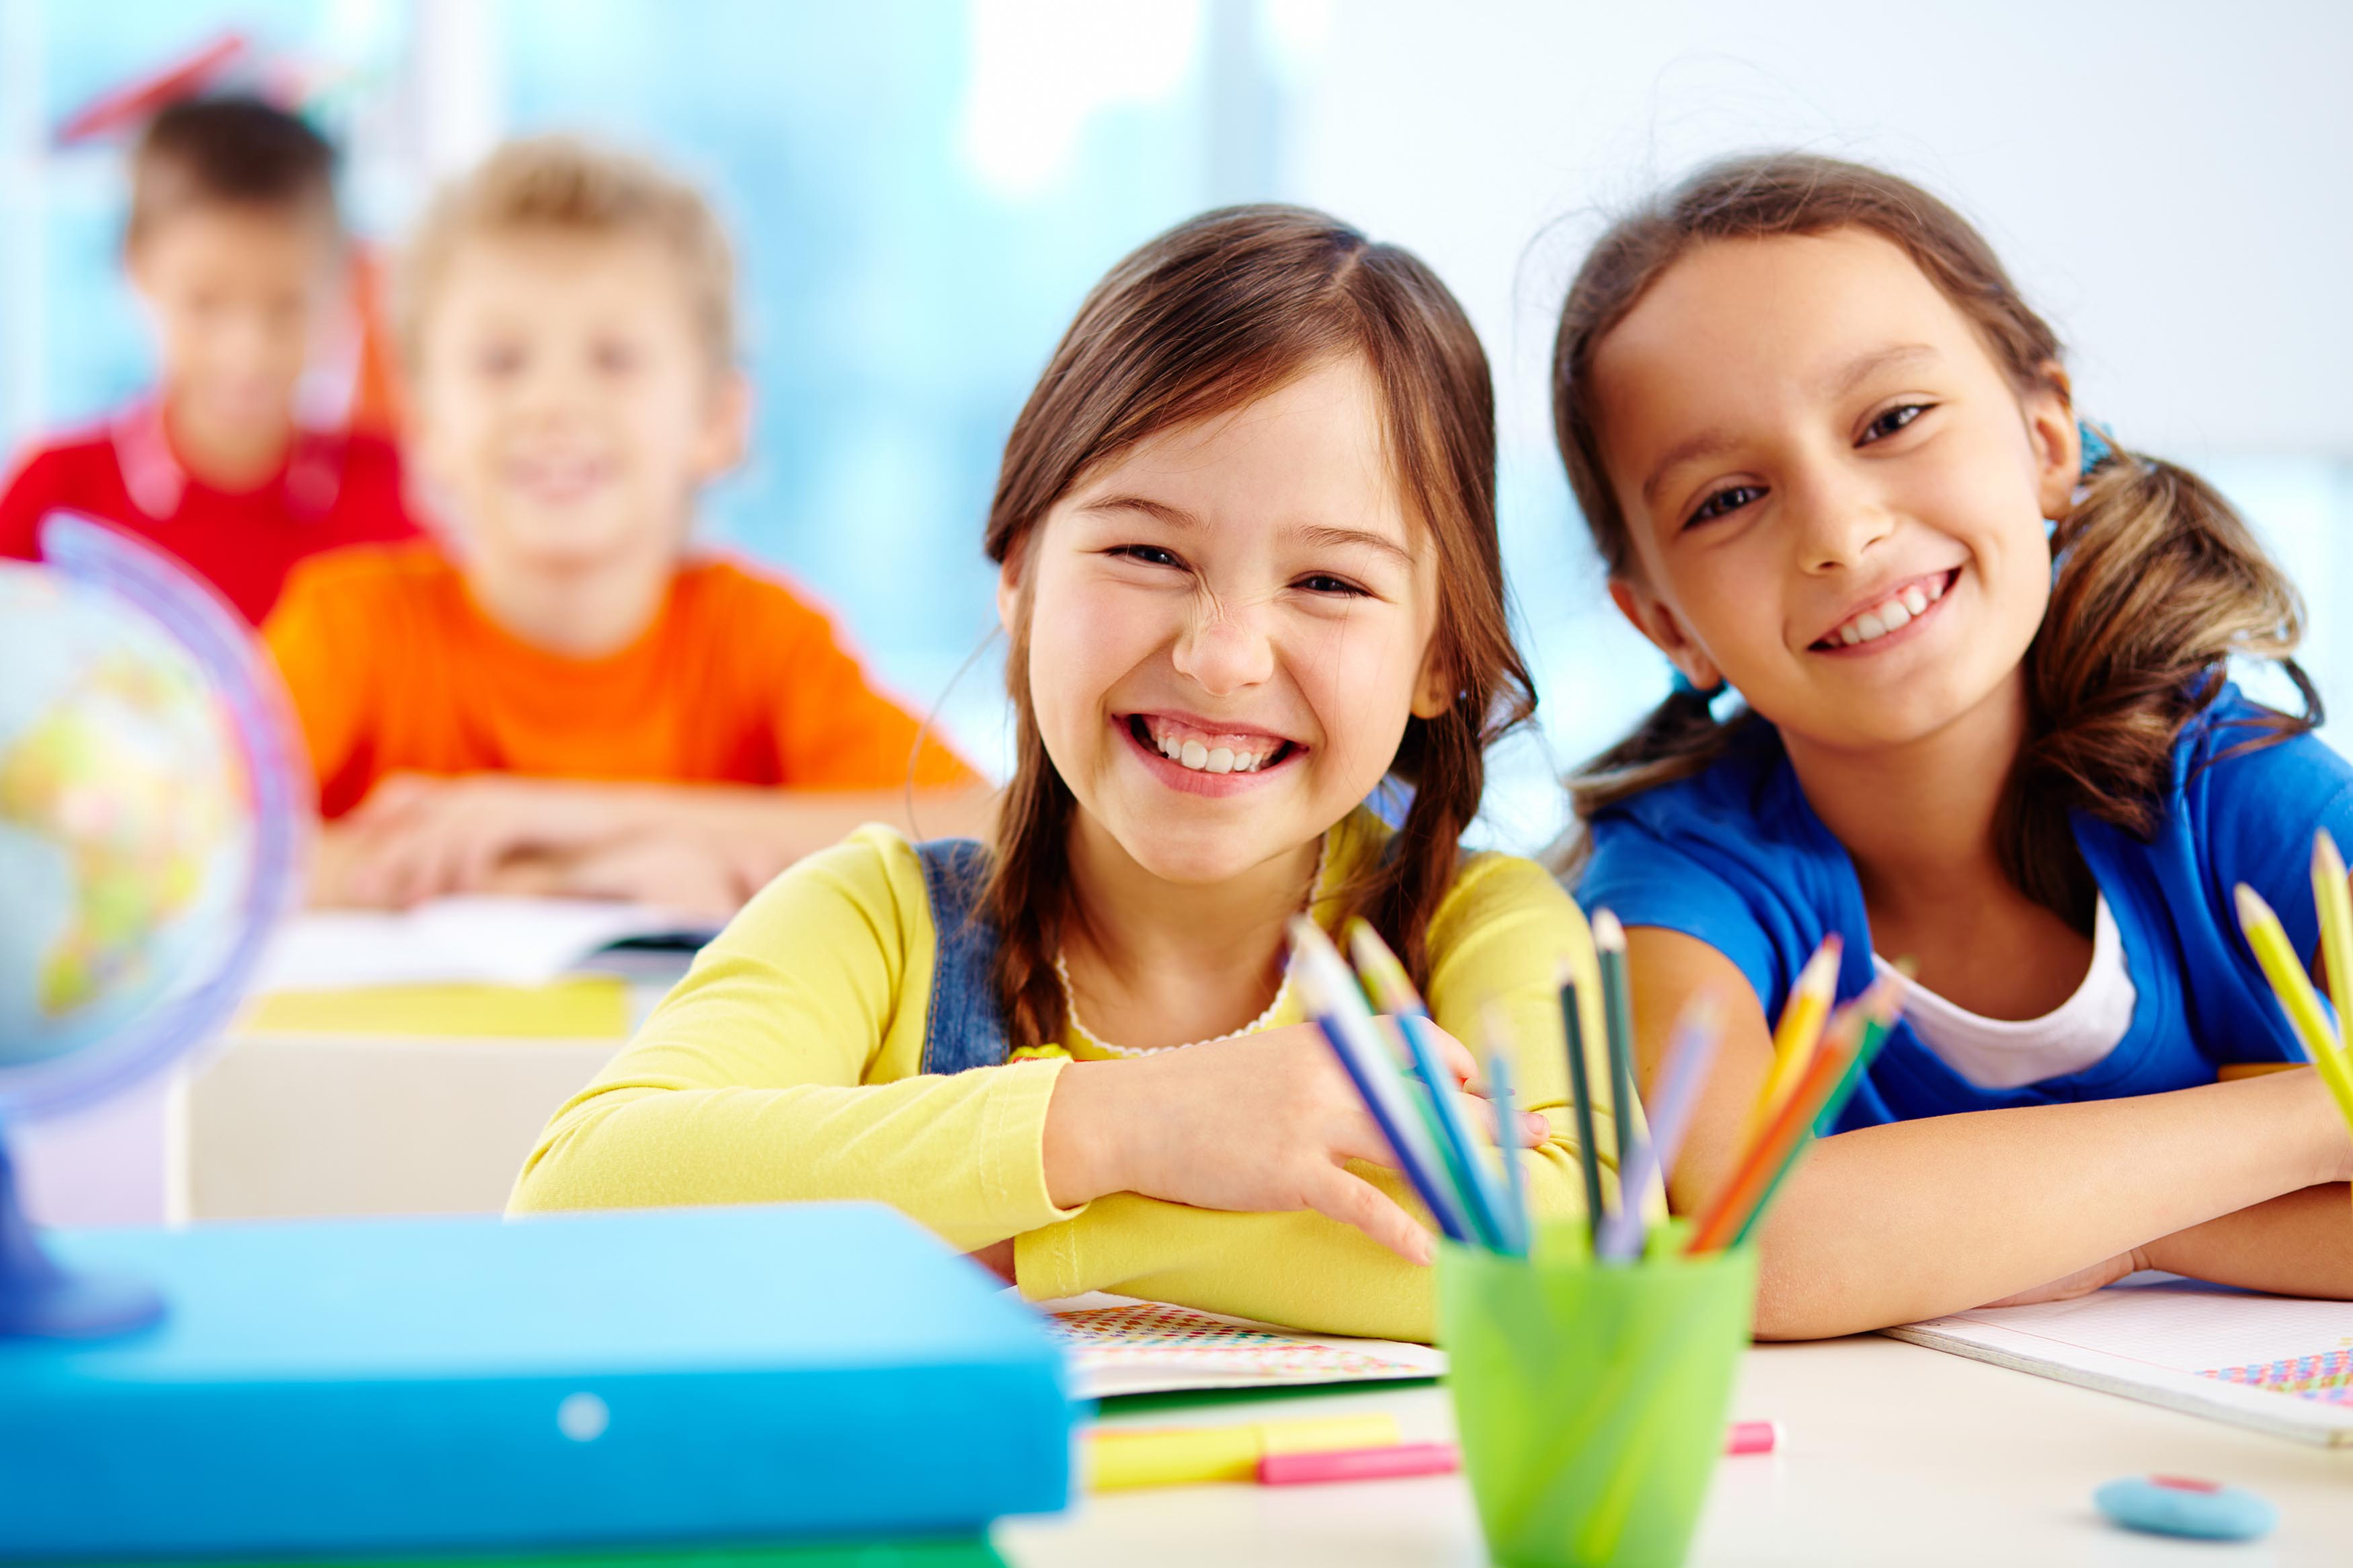 worksheet Learning For Kids best online learning for kids from abcmouse com